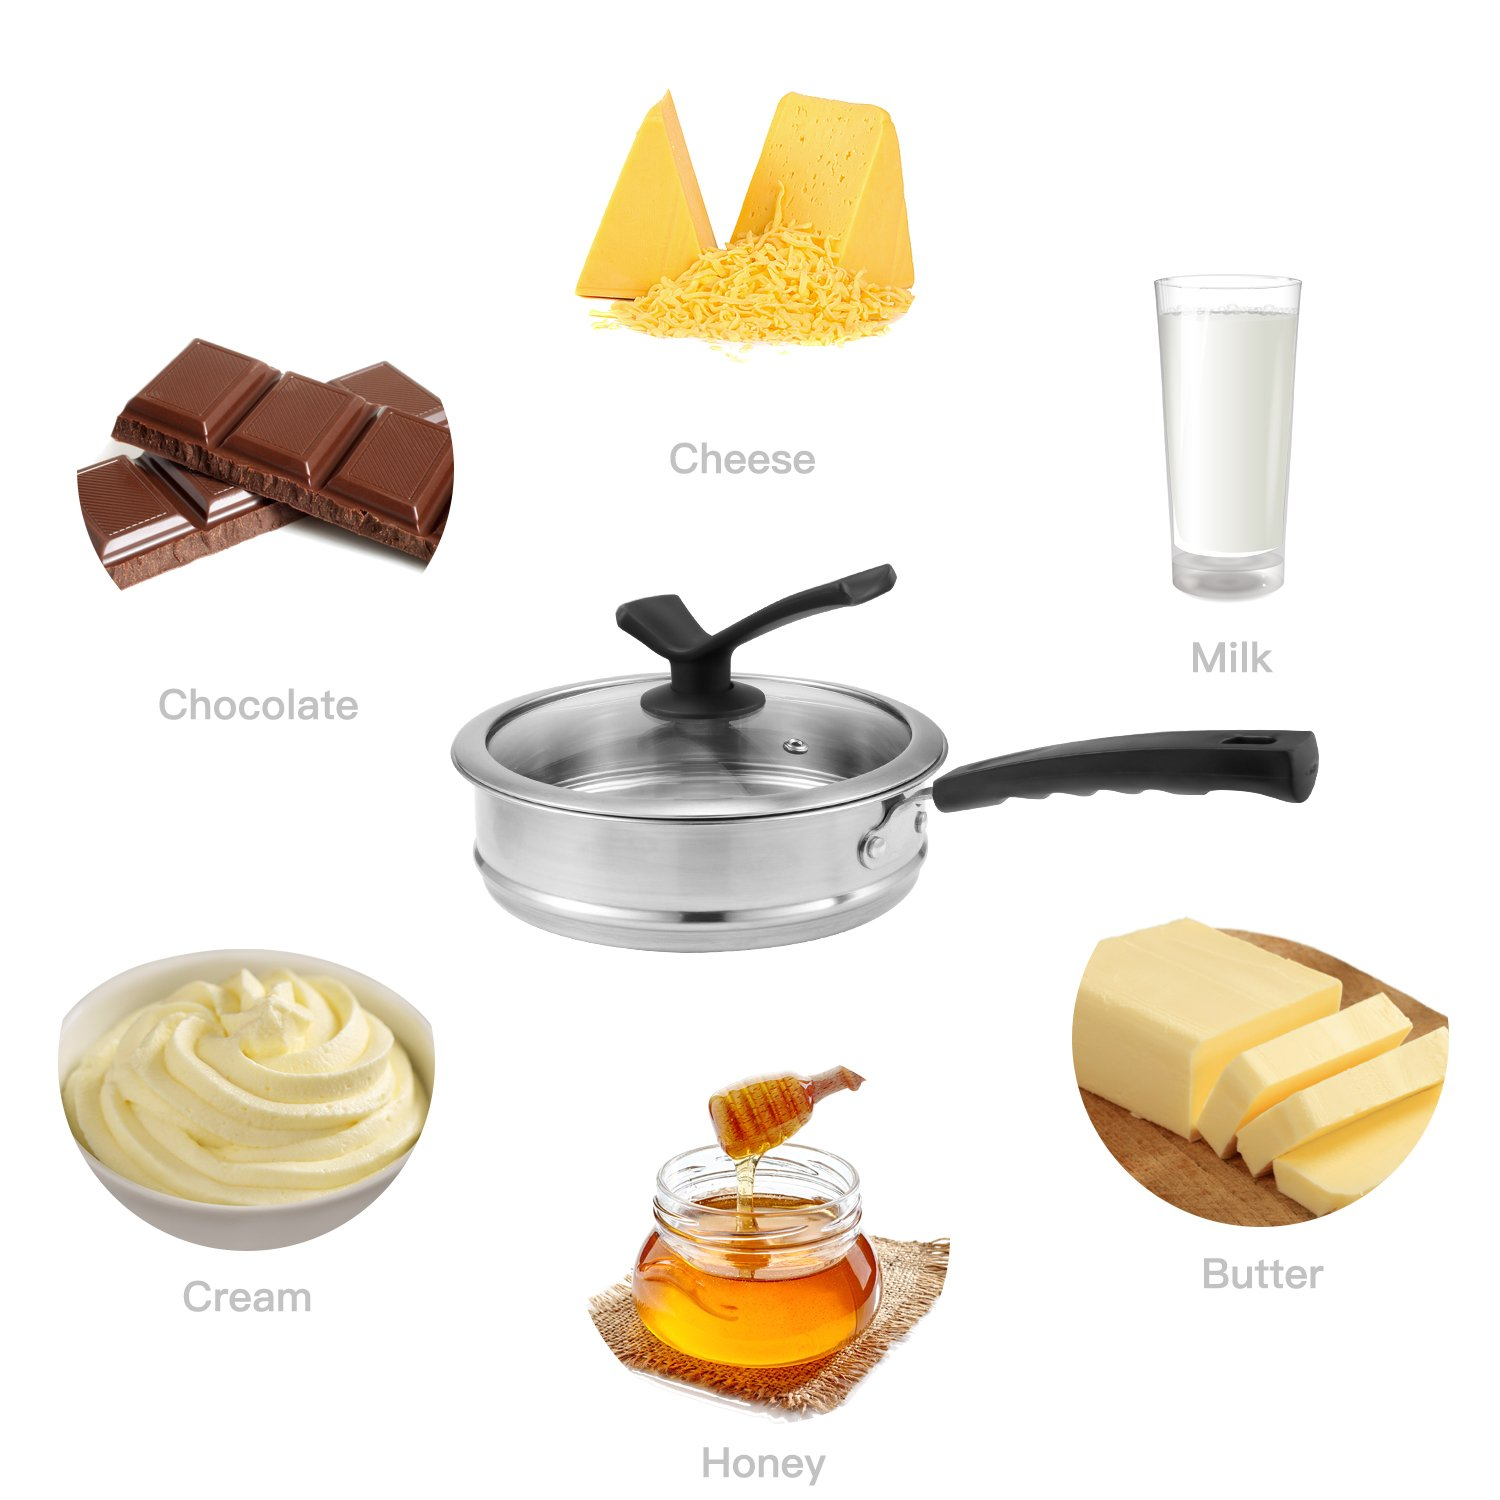 Double Boiler&Classic Stainless Steel Non-Stick Saucepan,Melting Pot for Butter,Chocolate,Cheese,Caramel and Bonus with Tempered Glass Lid by JKsmart (Image #5)